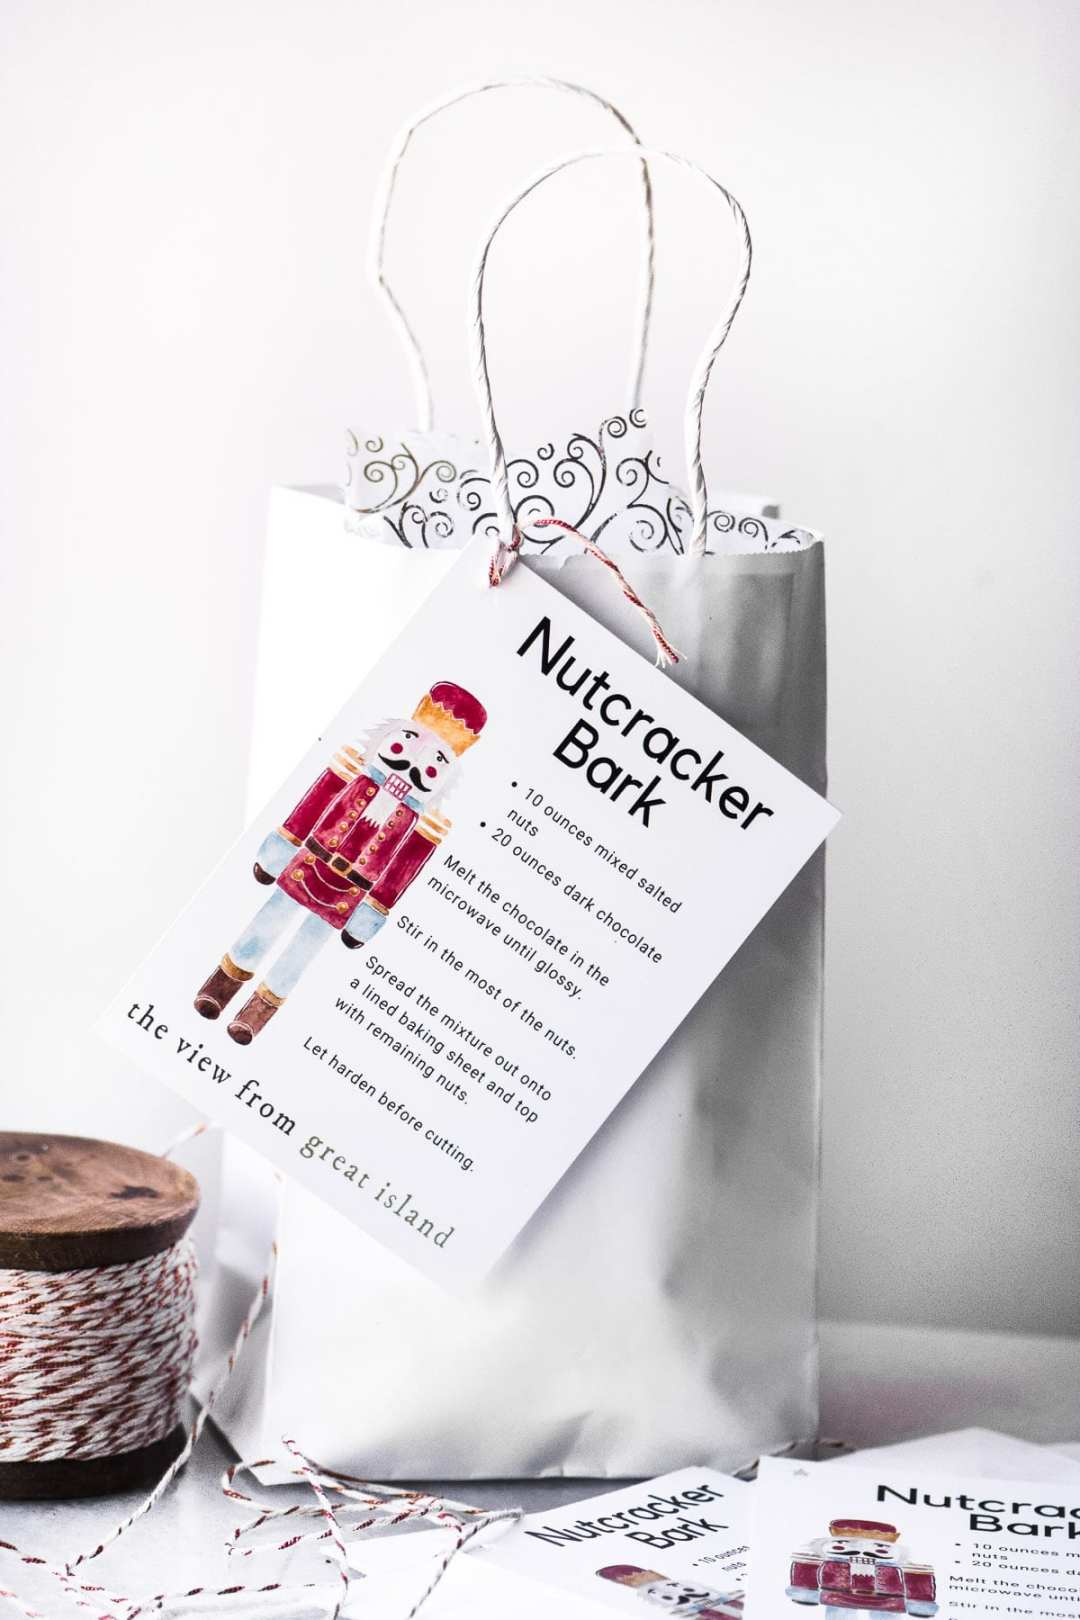 Nutcracker Bark gift bag with recipe tag